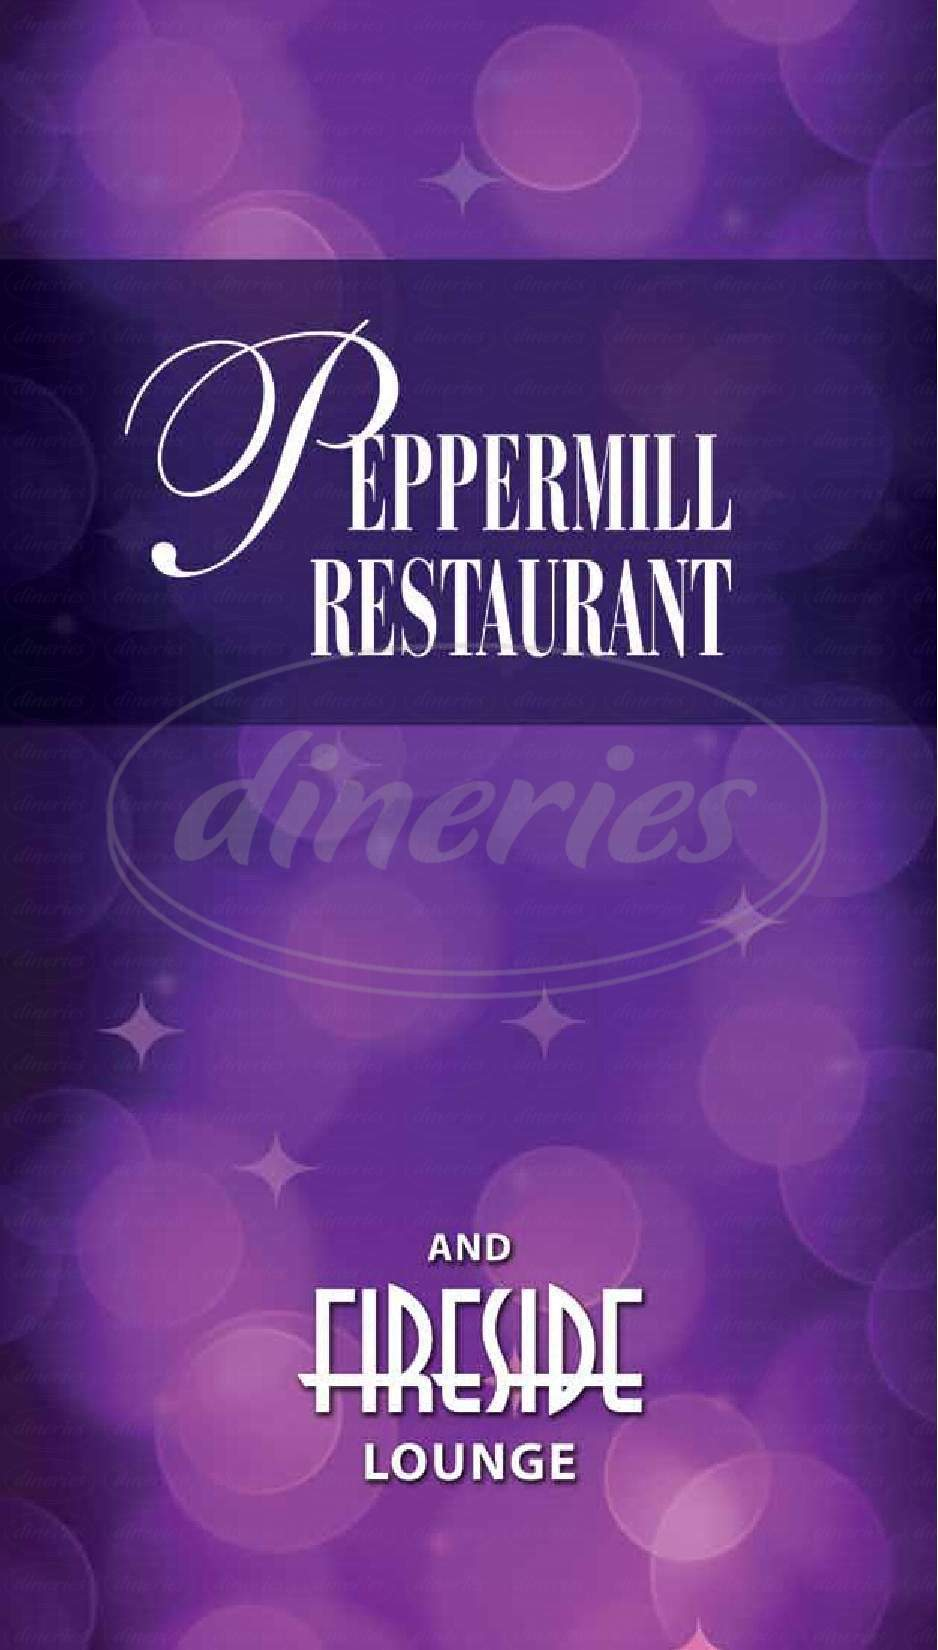 menu for The Peppermill Restaurant & Fireside Lounge